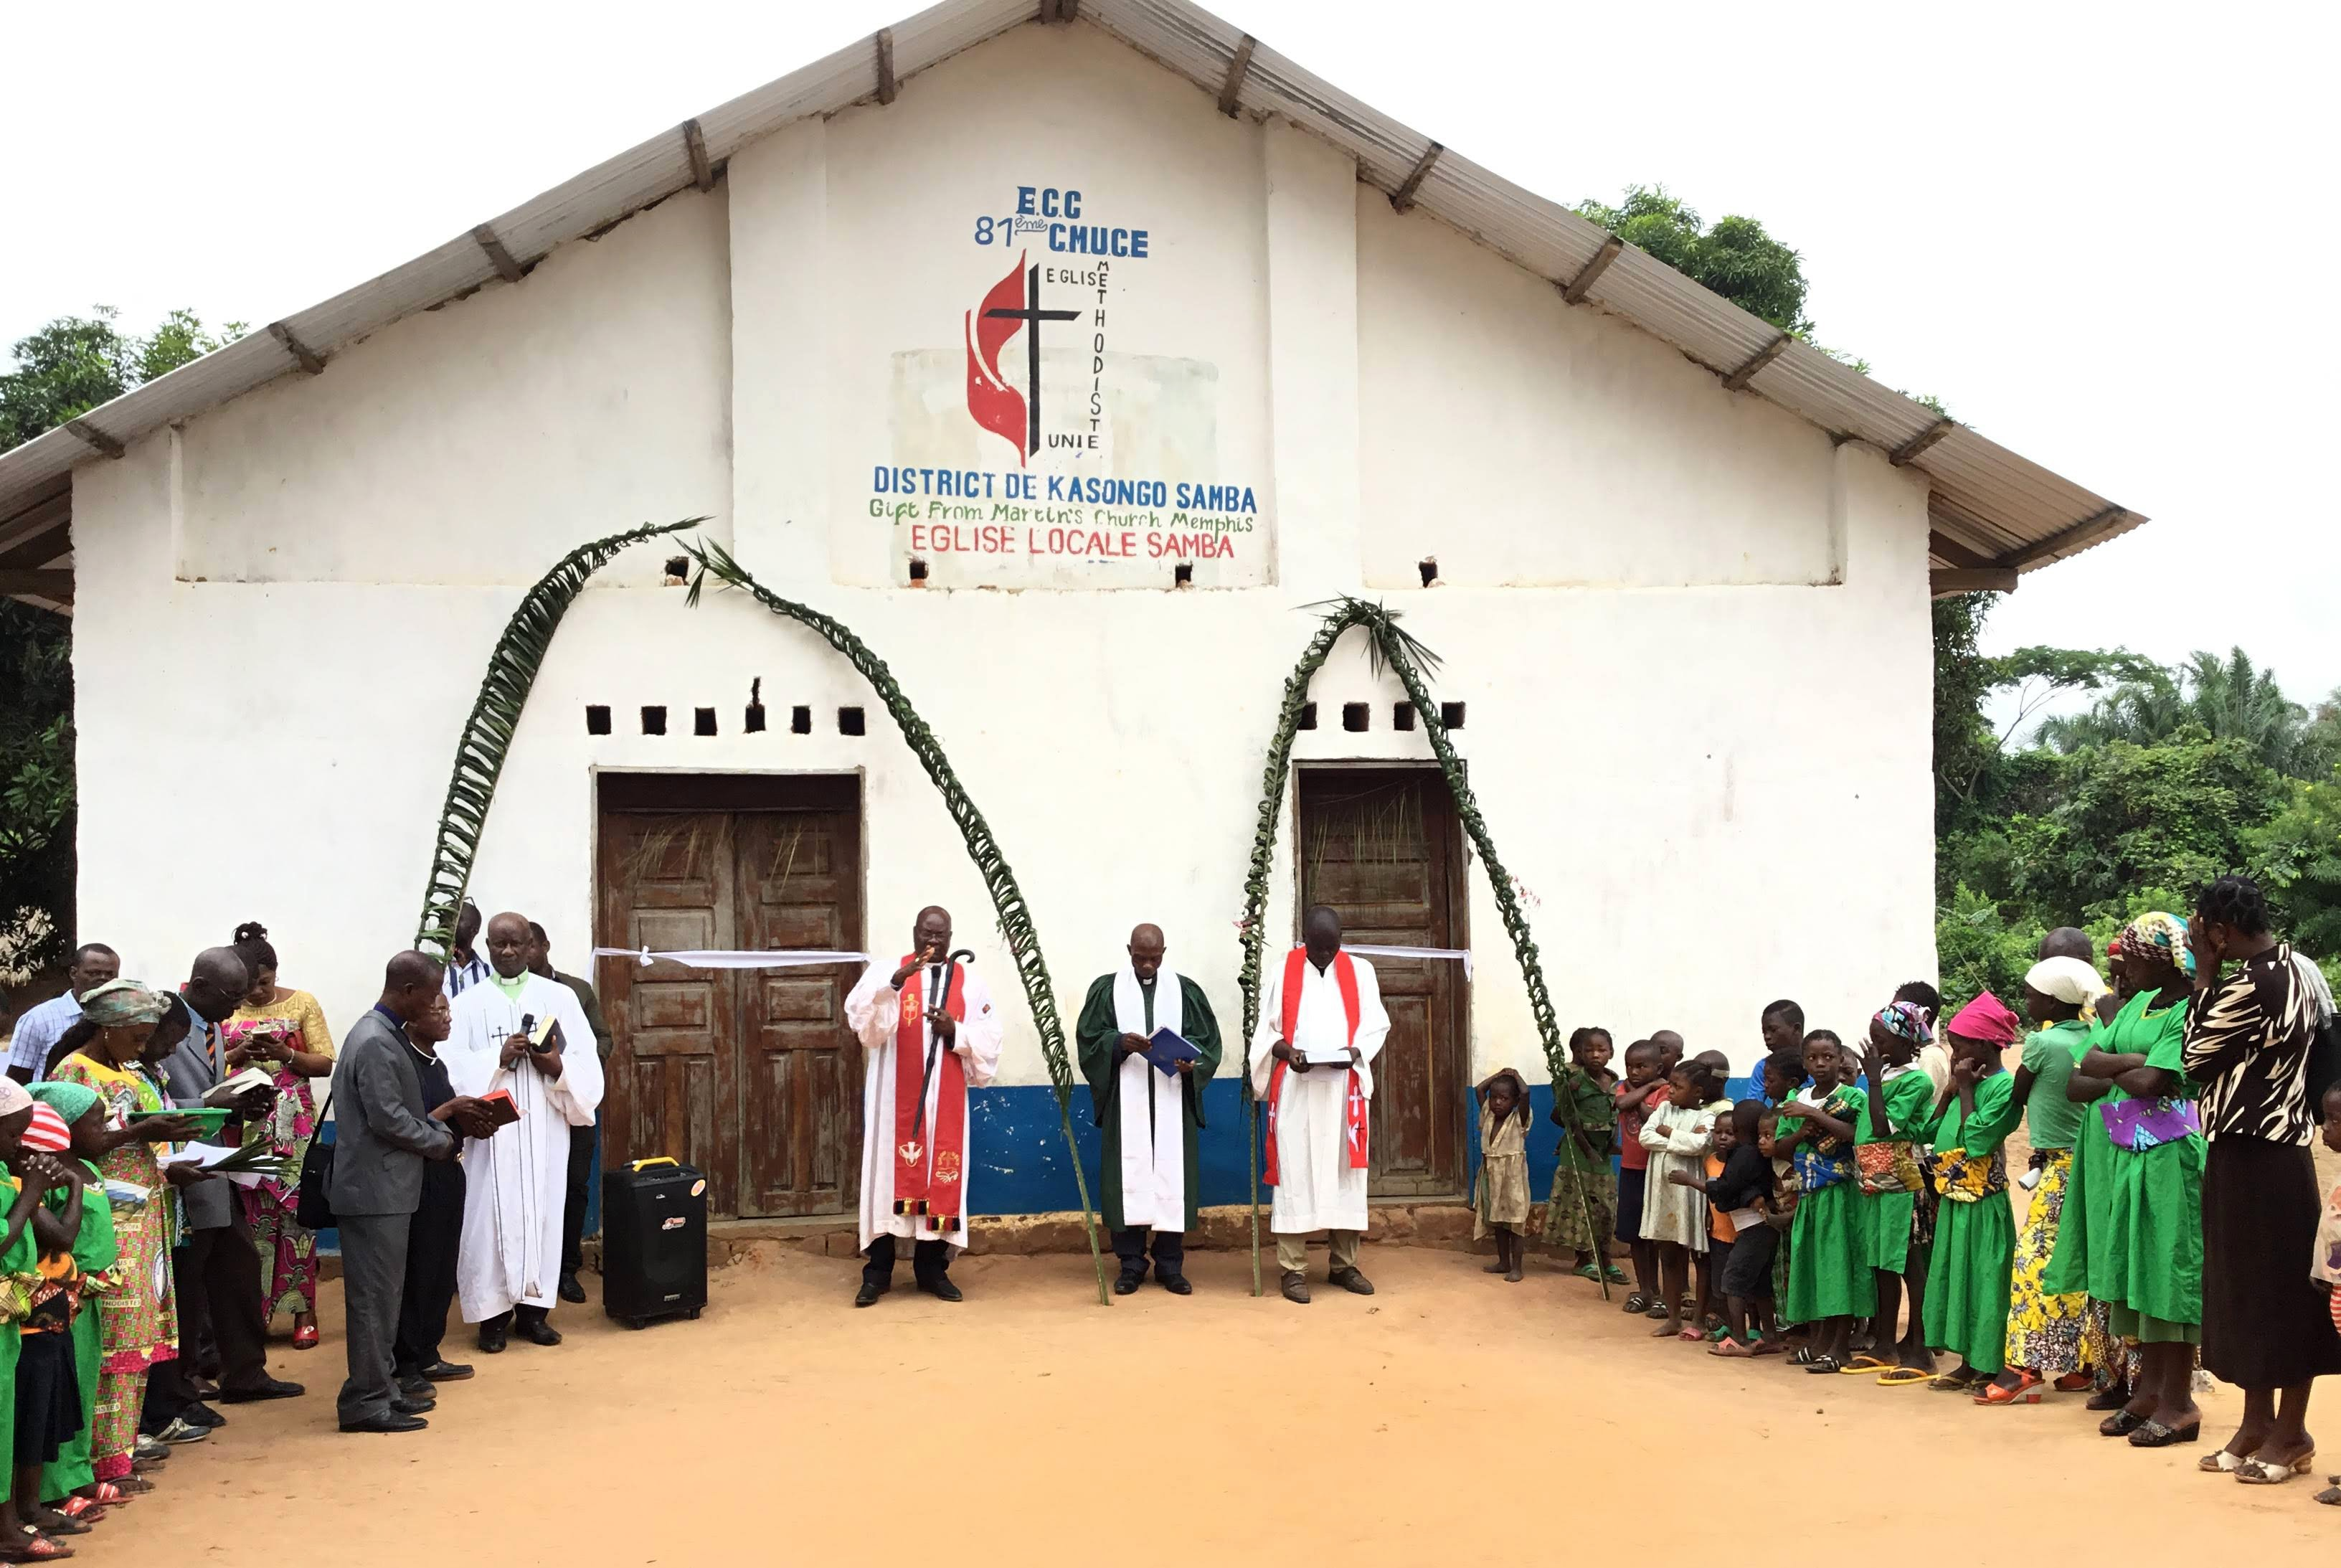 East Congo Bishop Gabriel Yemba Unda dedicates Samba United Methodist Church in the Kasongo-Samba District, which is nearly 250 miles from the bishop's office. During his 10-day trip, Unda dedicated more than 10 churches built with the help of United Methodist partnerships and local contributions. Photo by Judith Osongo Yanga, UM News.